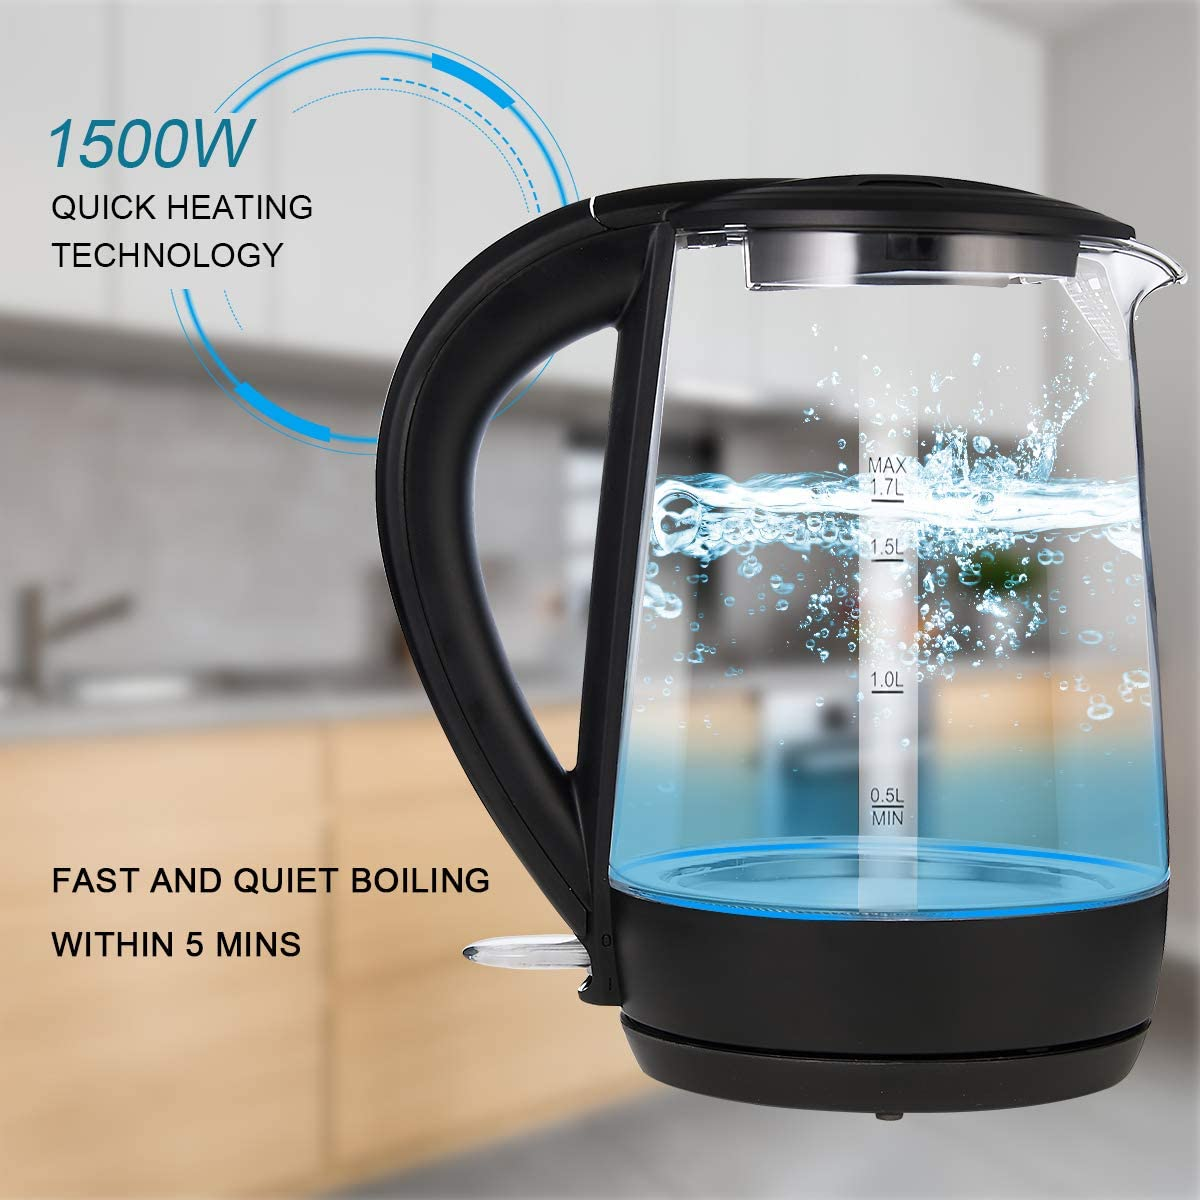 1.7L Electric Glass Kettle Auto Shut-Off and Boil-Dry Protection Stainless Steel Inner Lid /& Bottom WHITE TIGER Large Capacity with LED Light